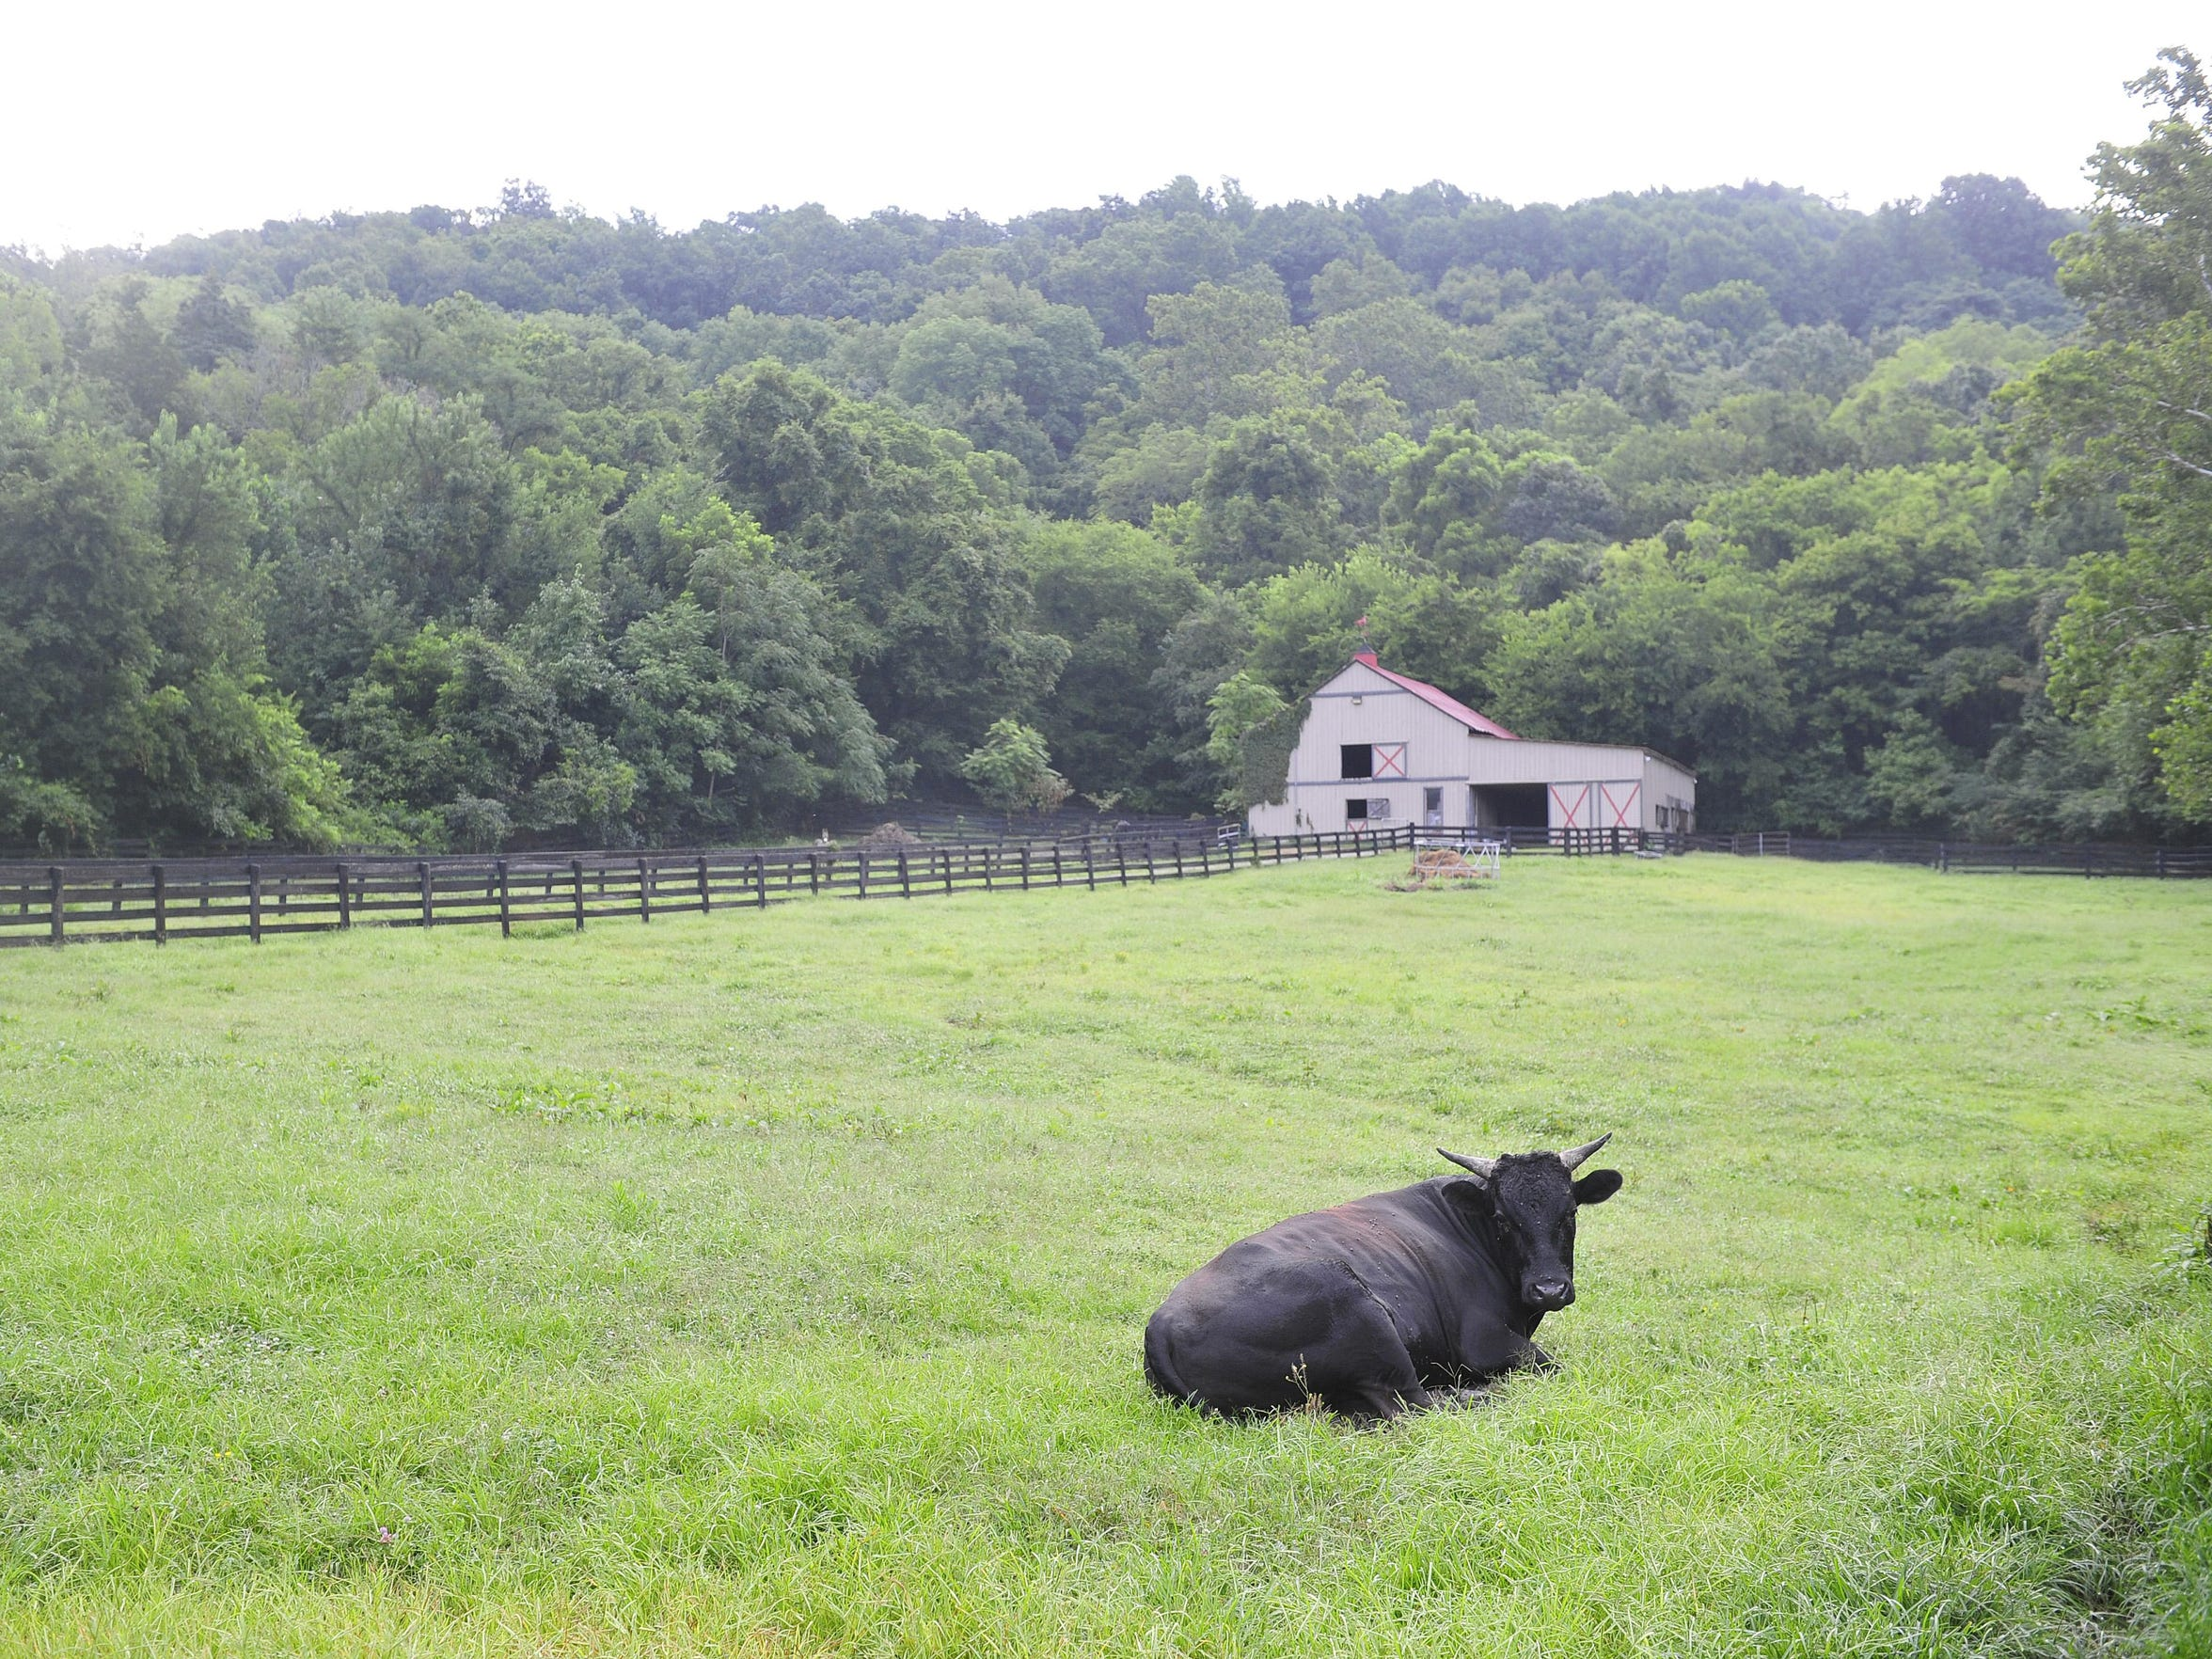 Bully Boy, a Wagyu bull, rests in a field at Spring Hollow farm in Franklin on July 23, 2015.